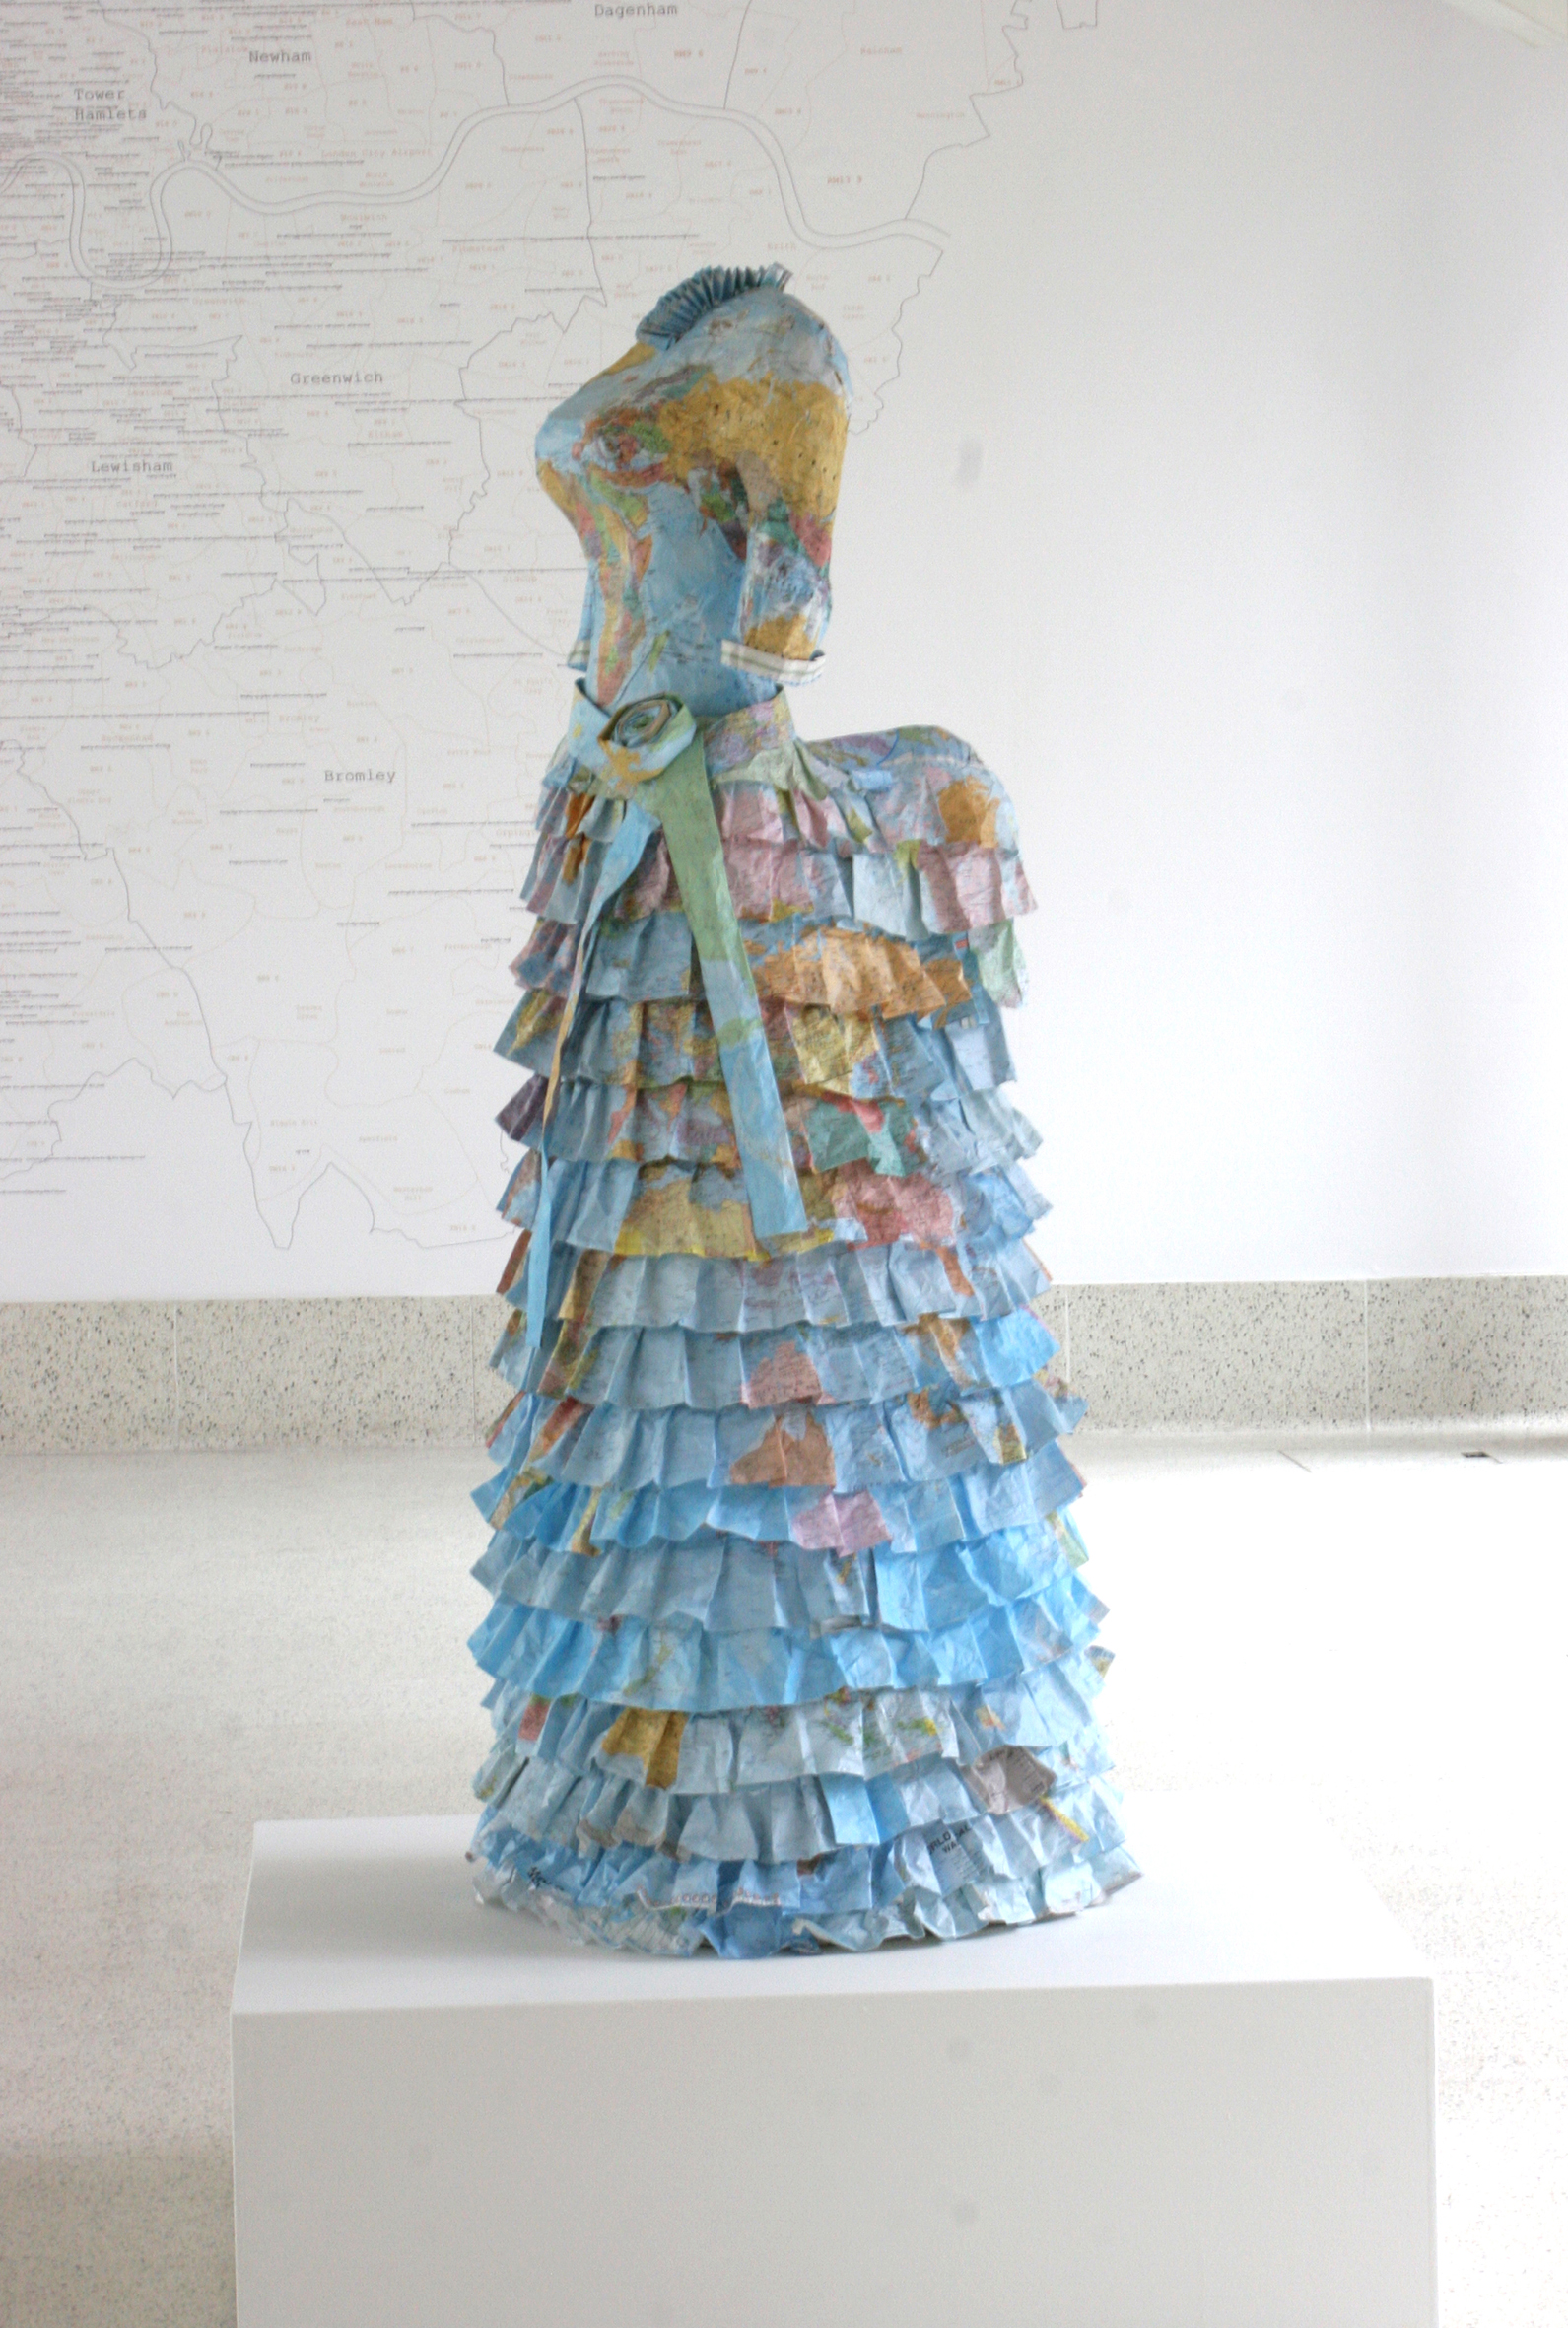 Colonial Dress made from paper maps. Lifesize © Susan Stockwell. Photo by Colin Hampden-White, 2011